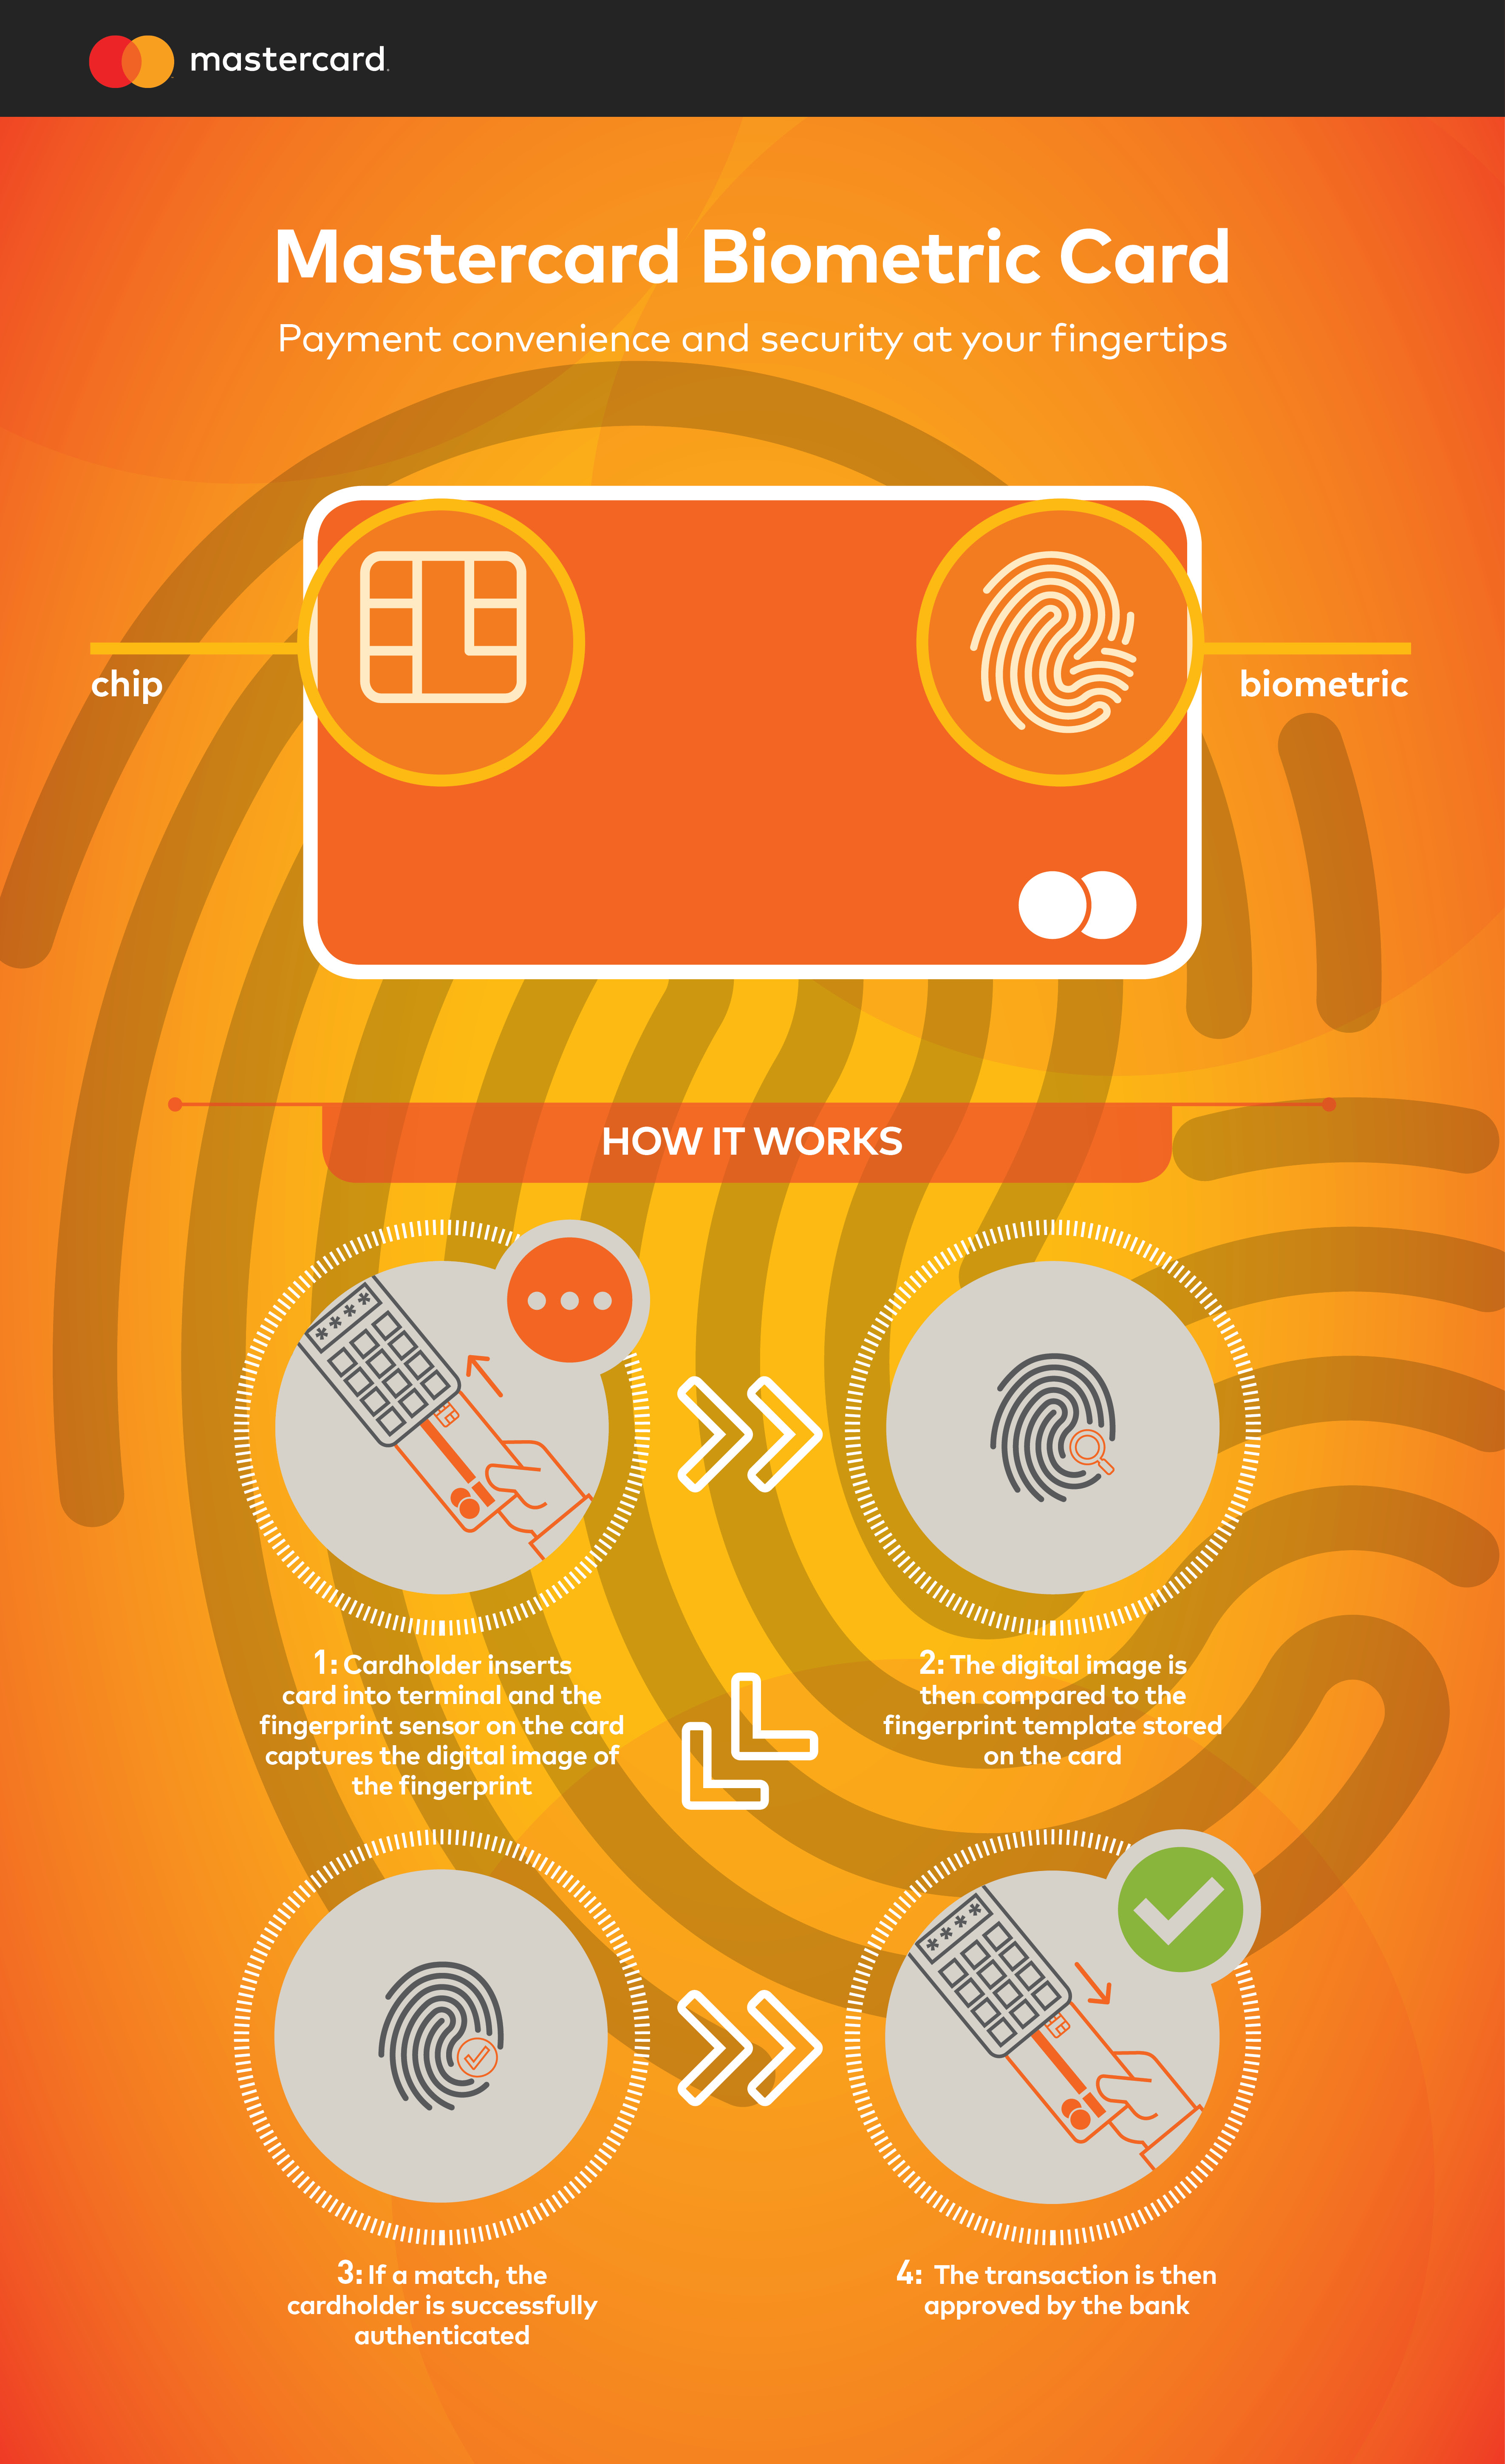 Mastercard - Biometric card infographic